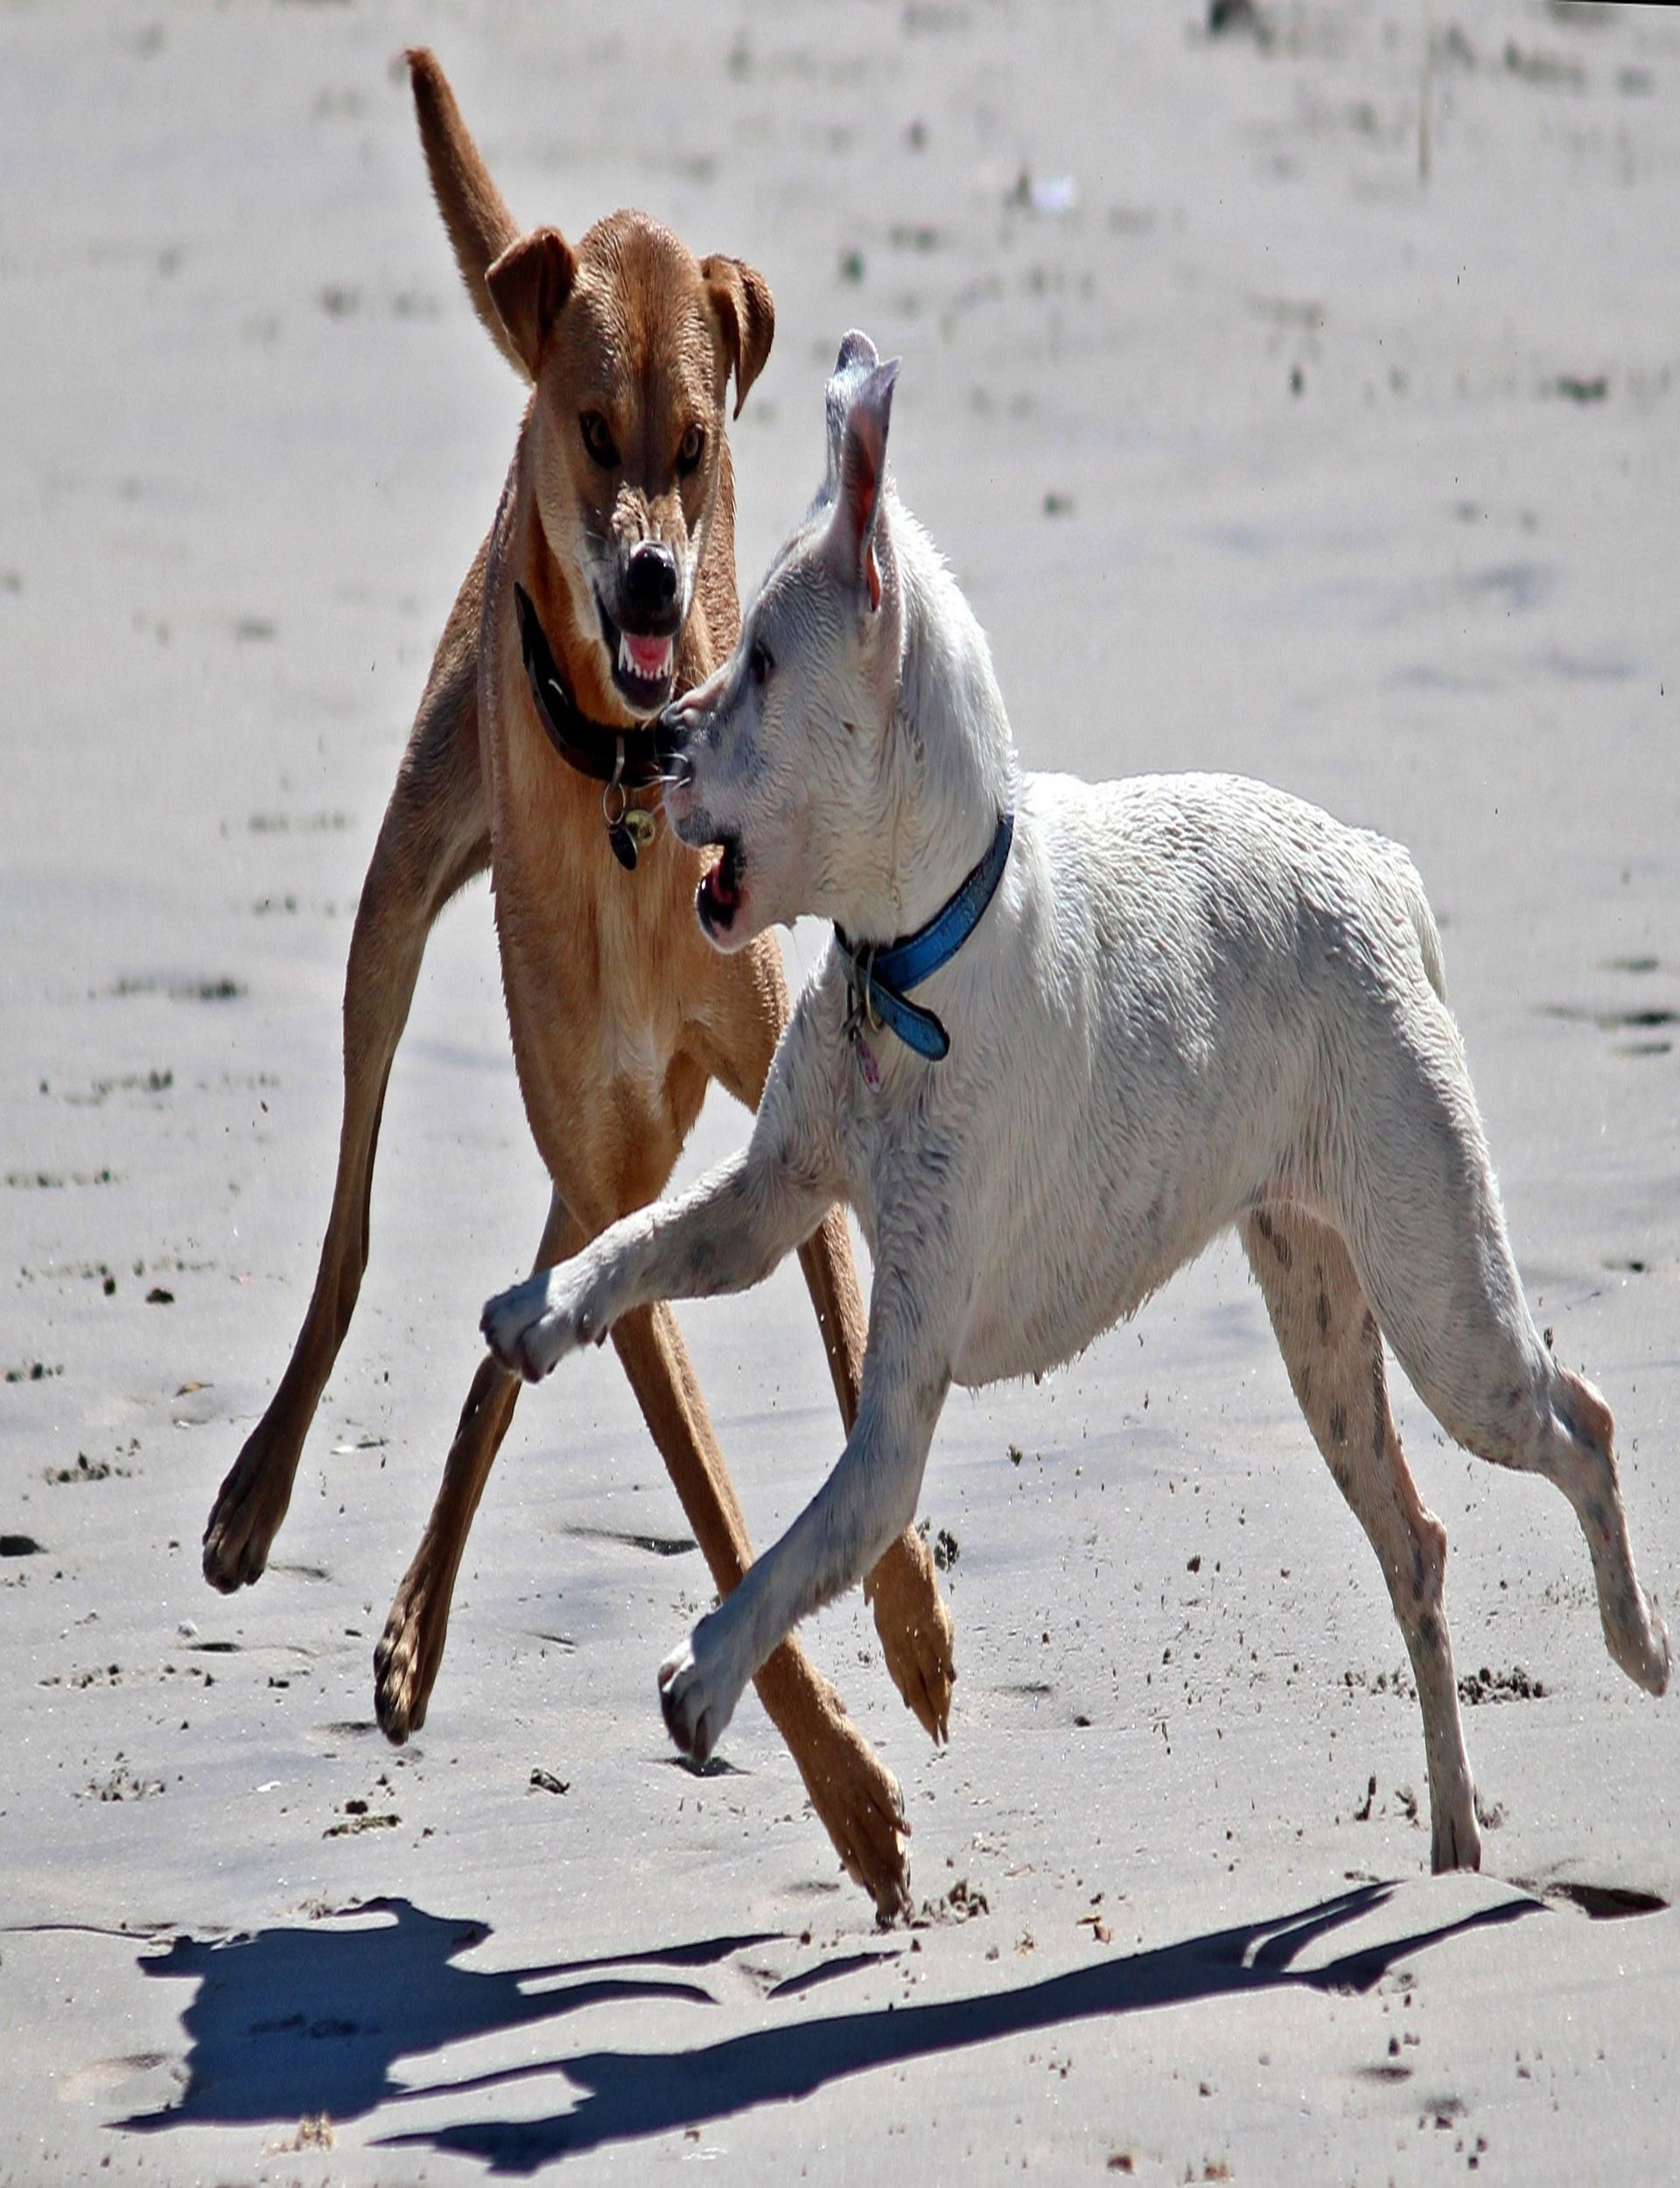 DOGS PLAY dogs play Beach dangerous Attack tooth